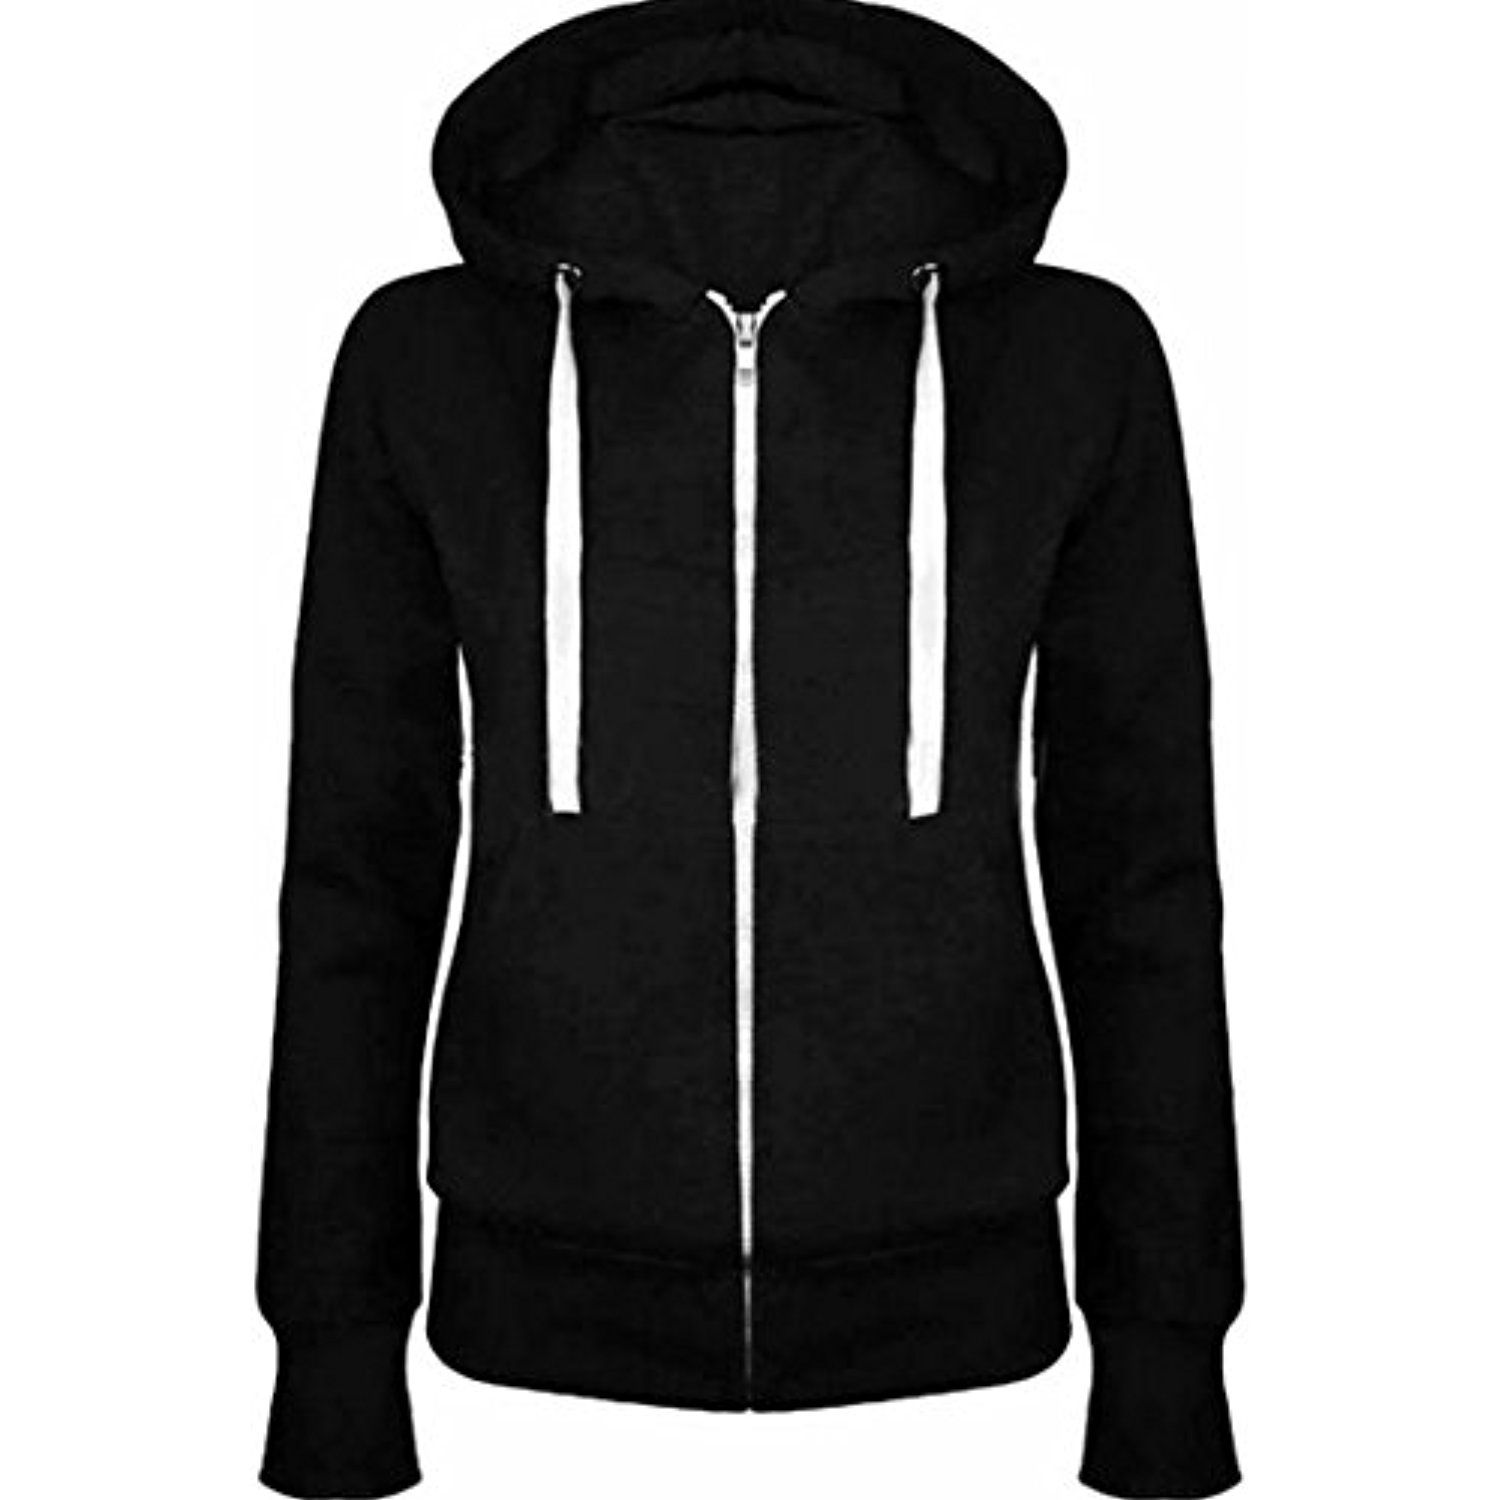 Generic Mens Long Sleeve Hoodies Solid Regular Fit Athletic Pullover Sweatshirts